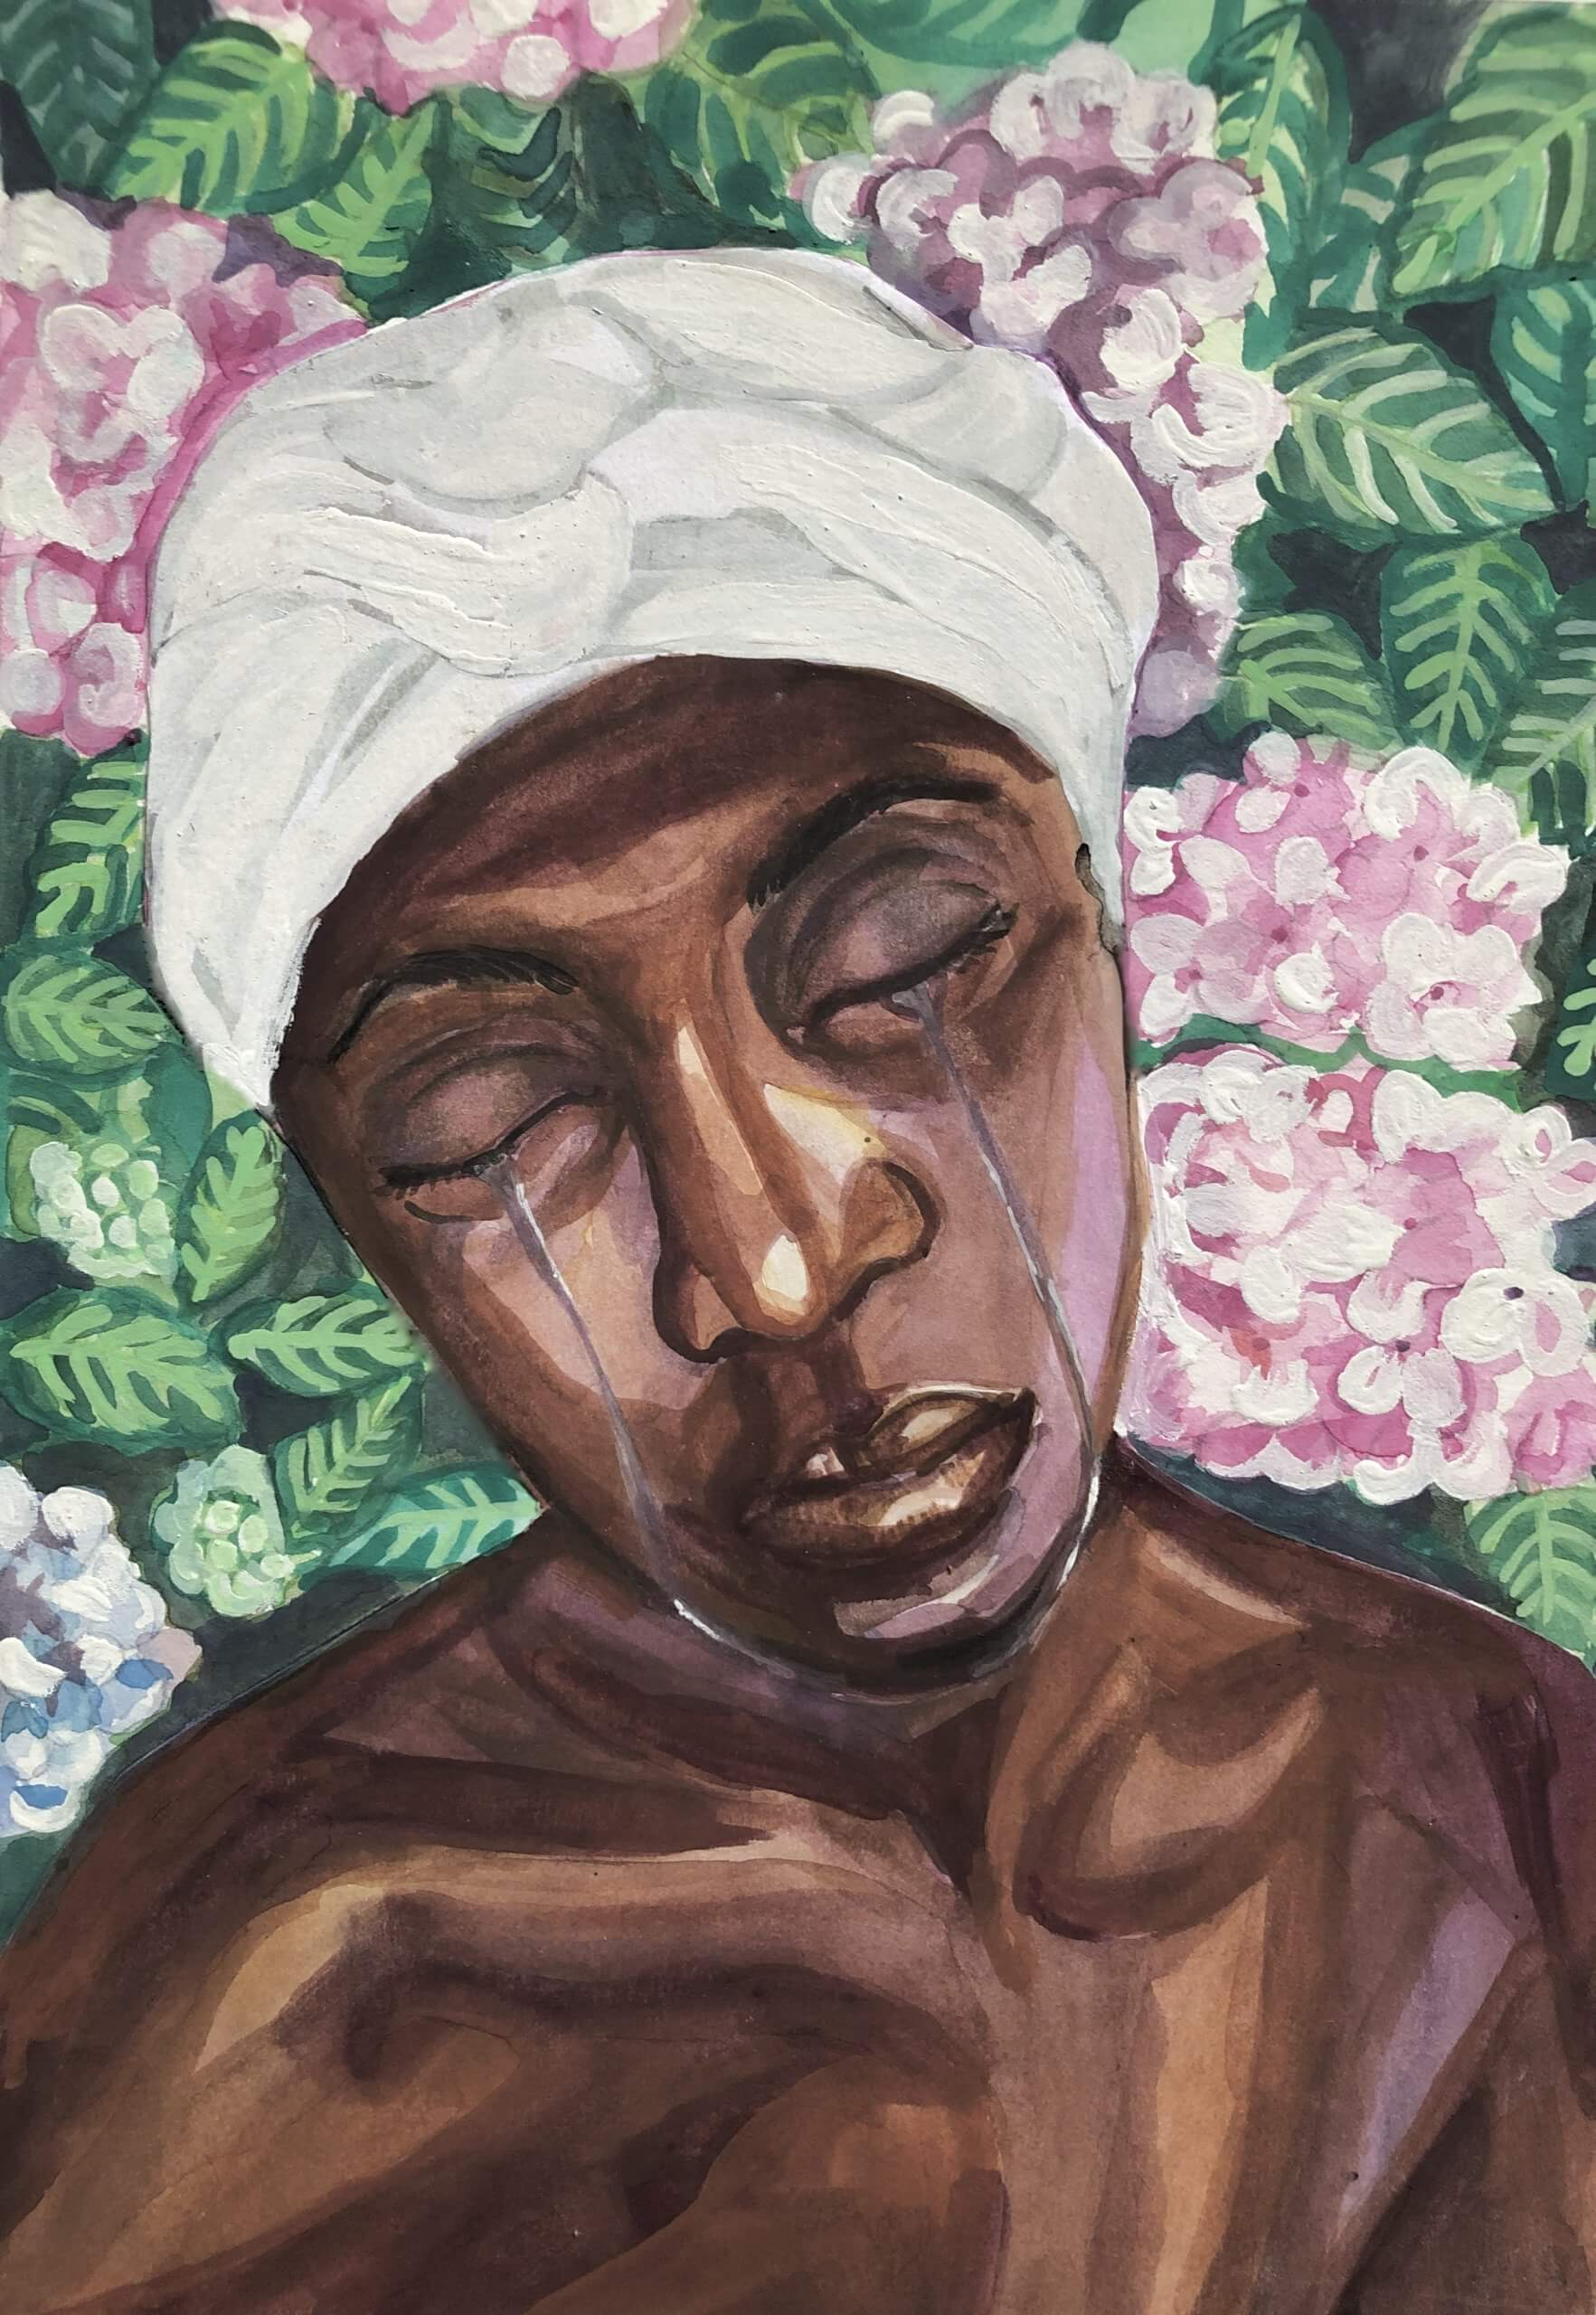 A painting of a Black woman's bust against a field of pink flowers. She has her eyes closed and is weeping.